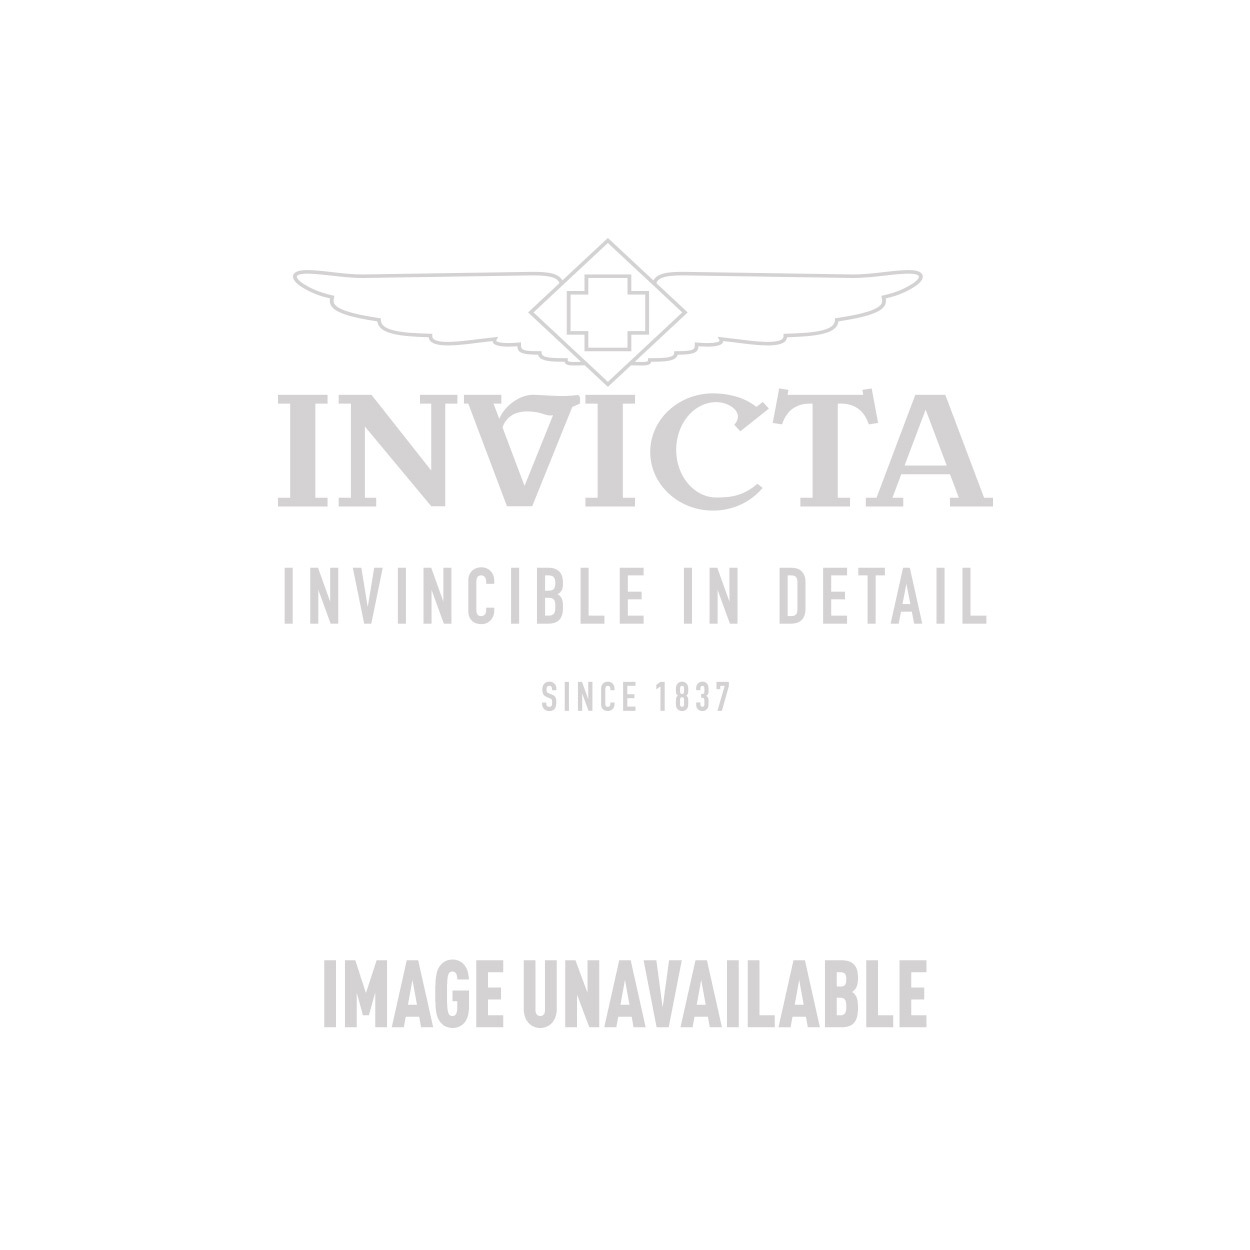 Invicta Specialty Quartz Watch - Stainless Steel case Stainless Steel band - Model 13973